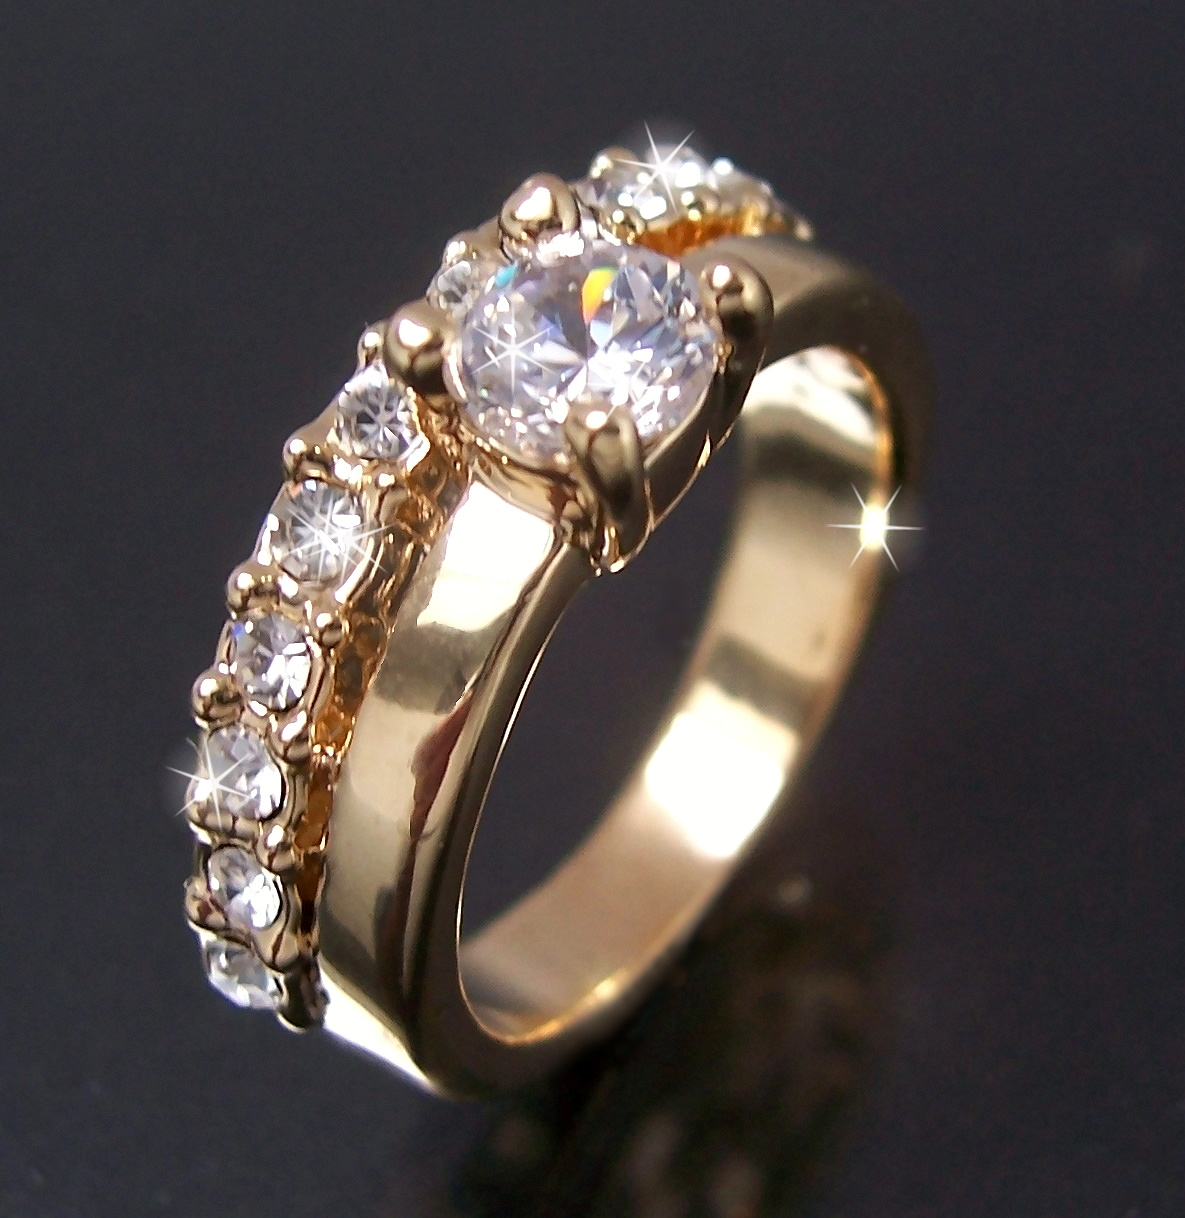 R51 Finger-RING RINGE GOLD-PL. STRASS 17mm SCHMUCK